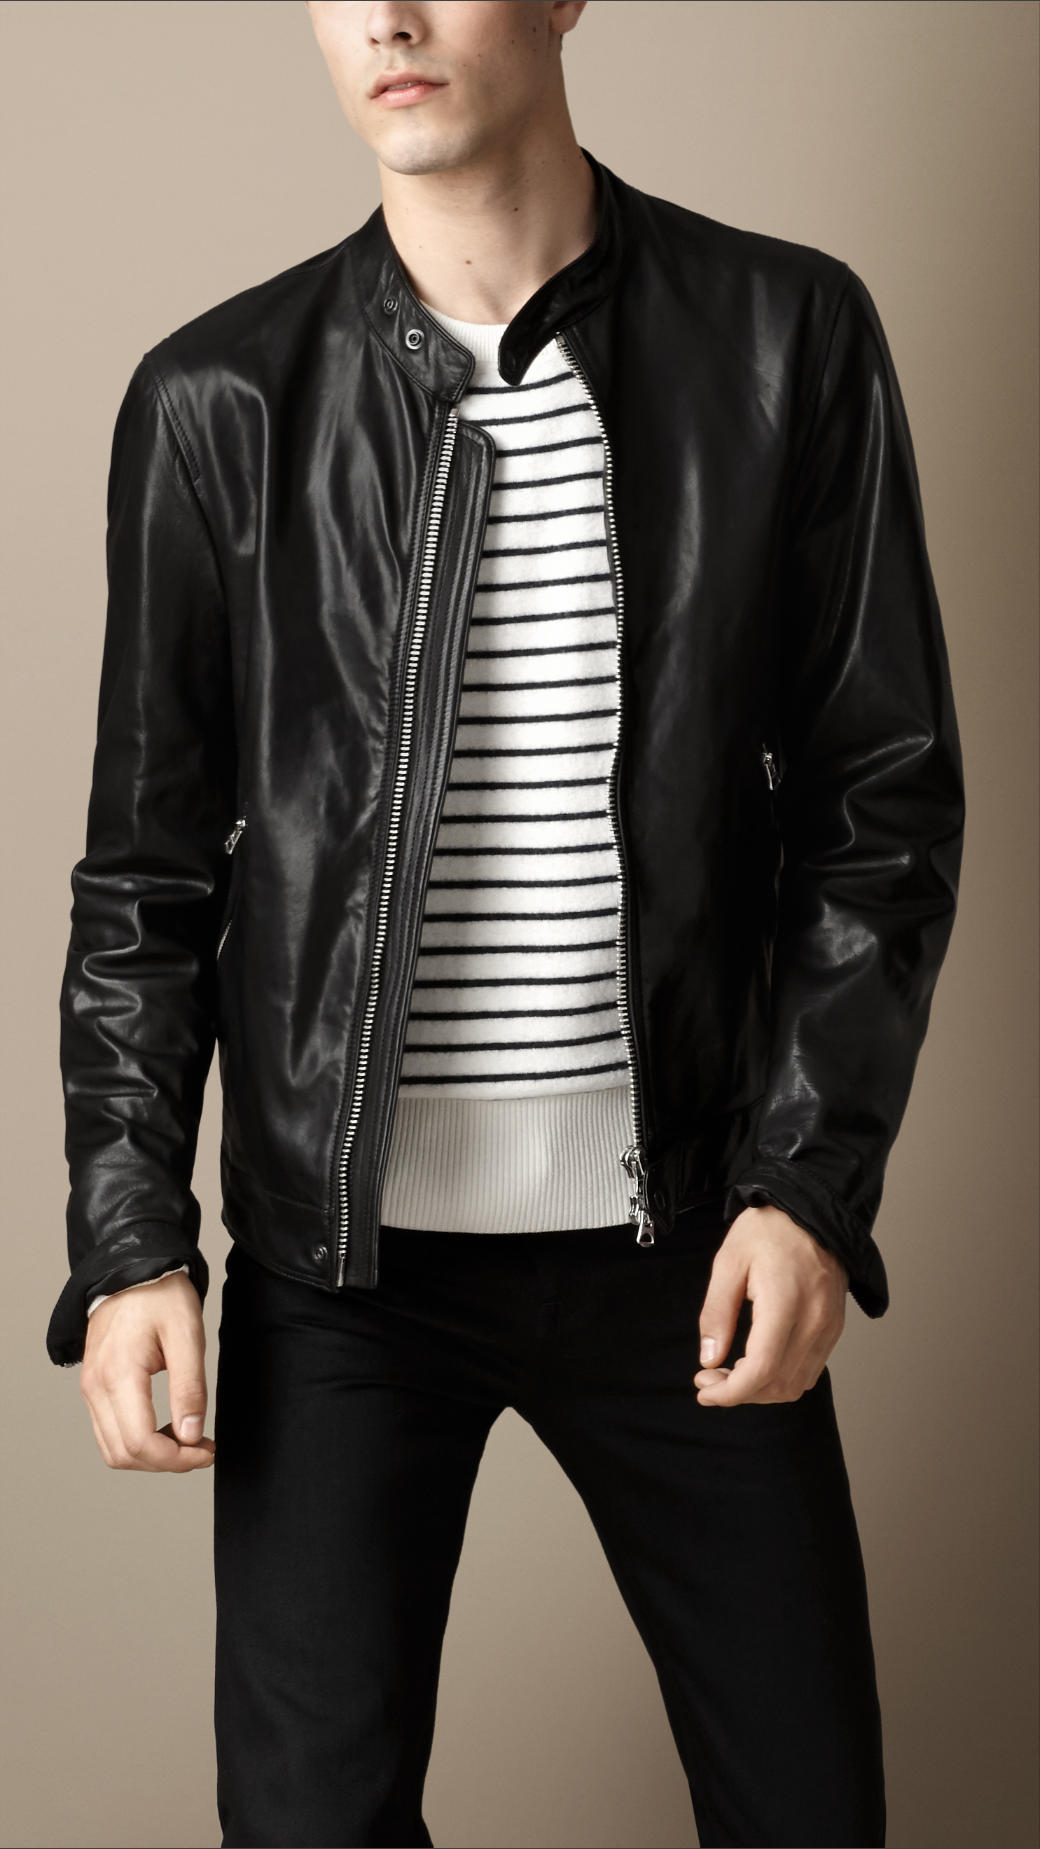 Soft black leather jacket